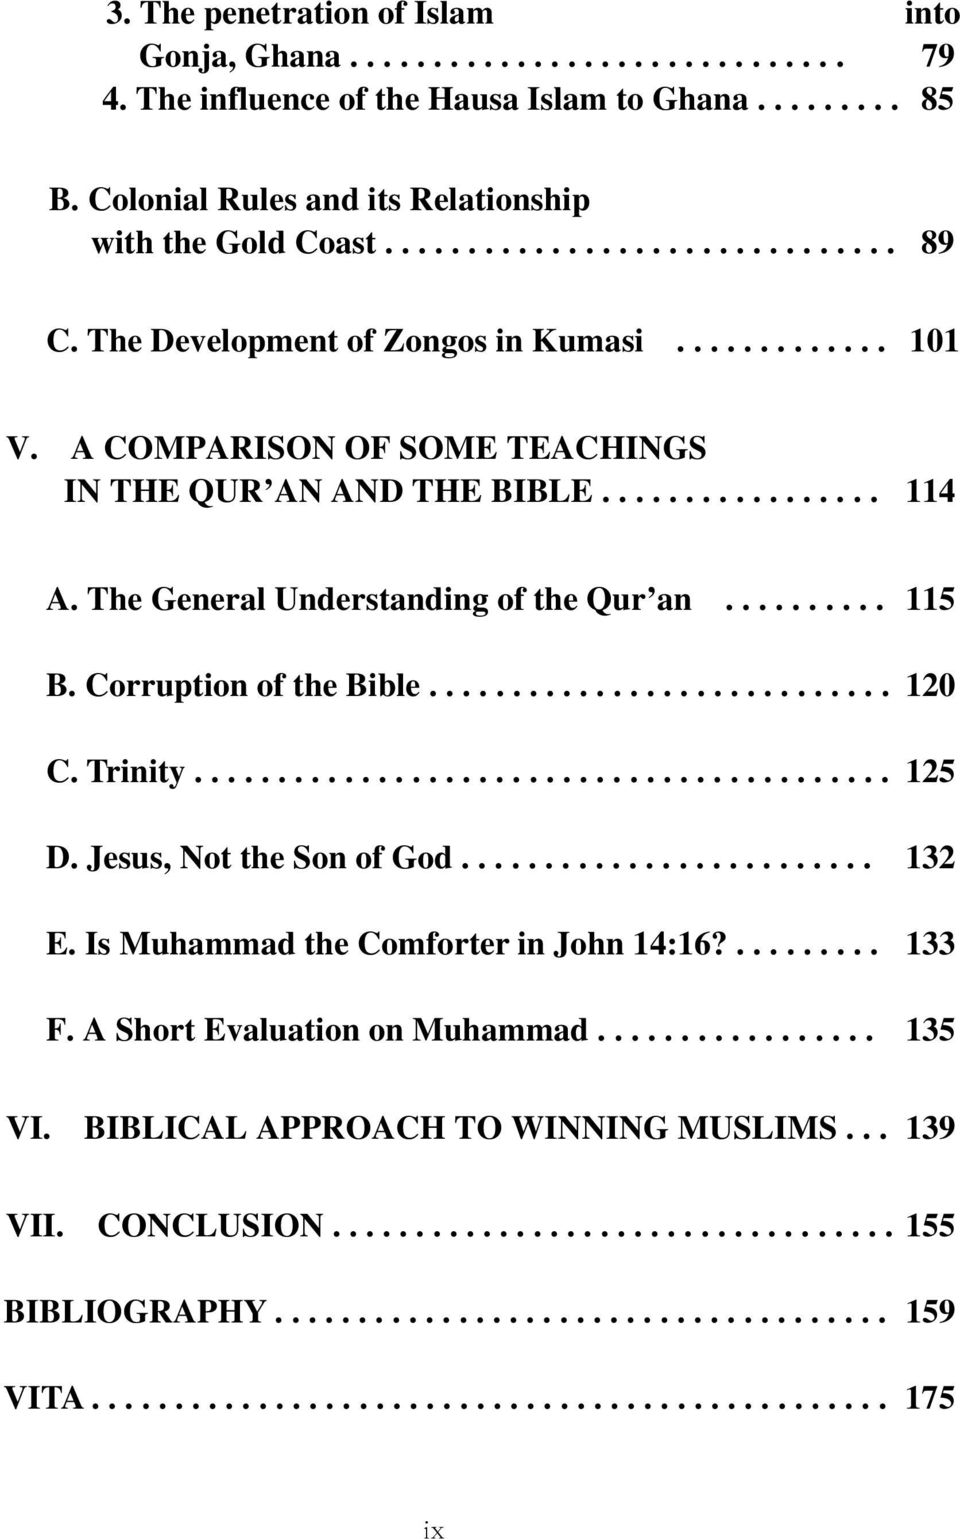 muhammad in the bible pdf